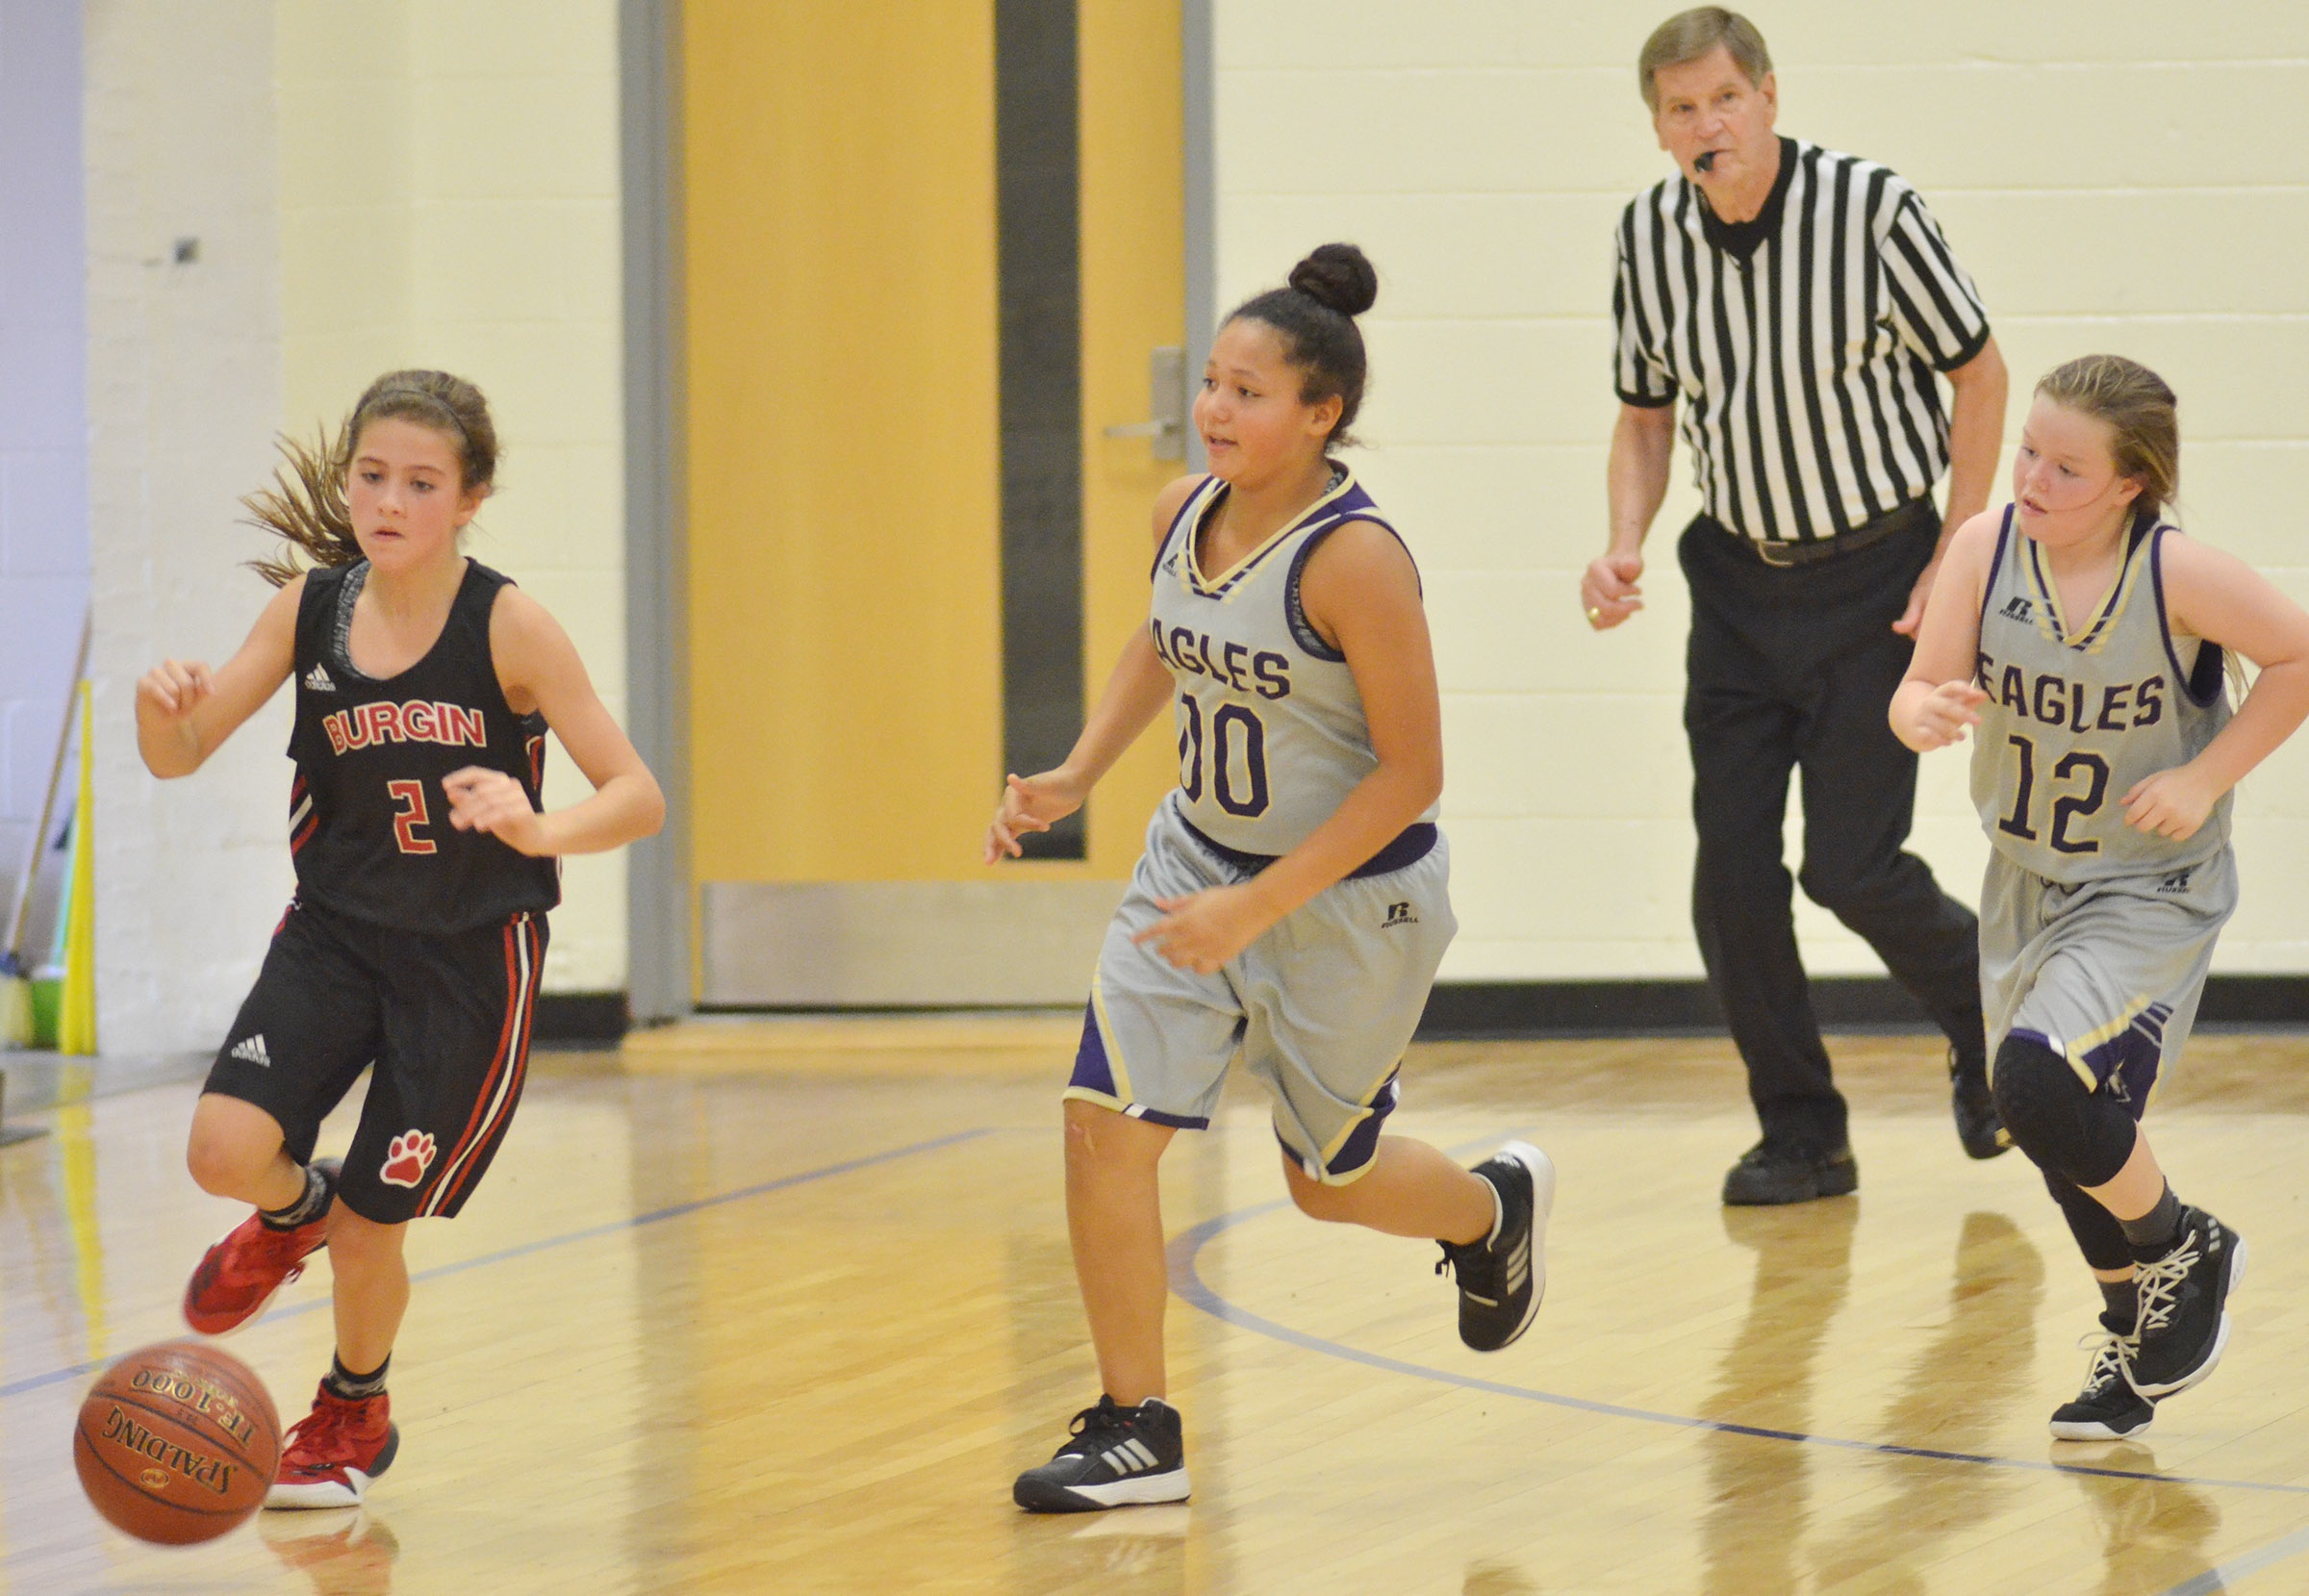 Campbellsville Elementary School fifth-graders Kenya Bridgewater, center, and Miley Hash, at right, run down the court.